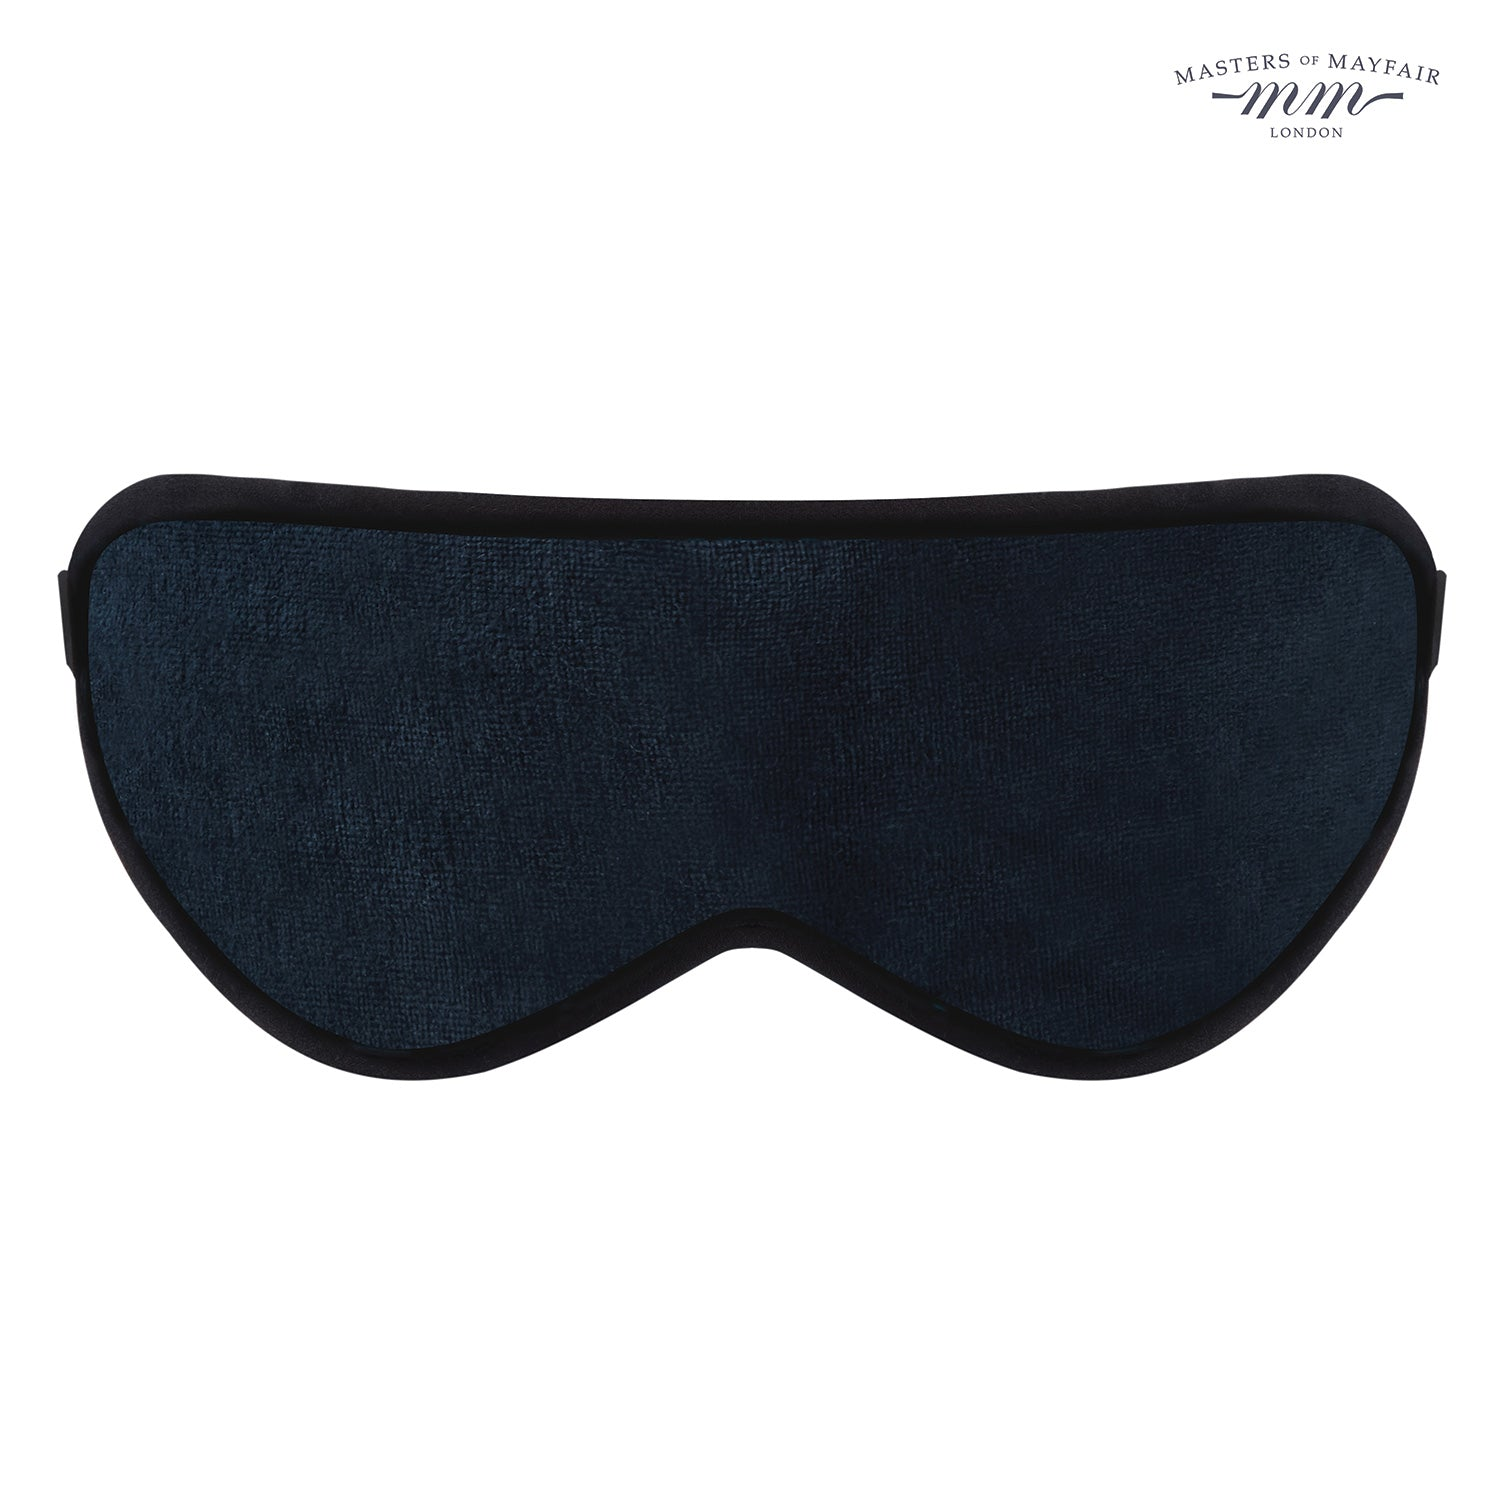 Lavender Infused Luxury Sleep Face Mask Masters Of Mayfair UK Navy Blue Front Unisex